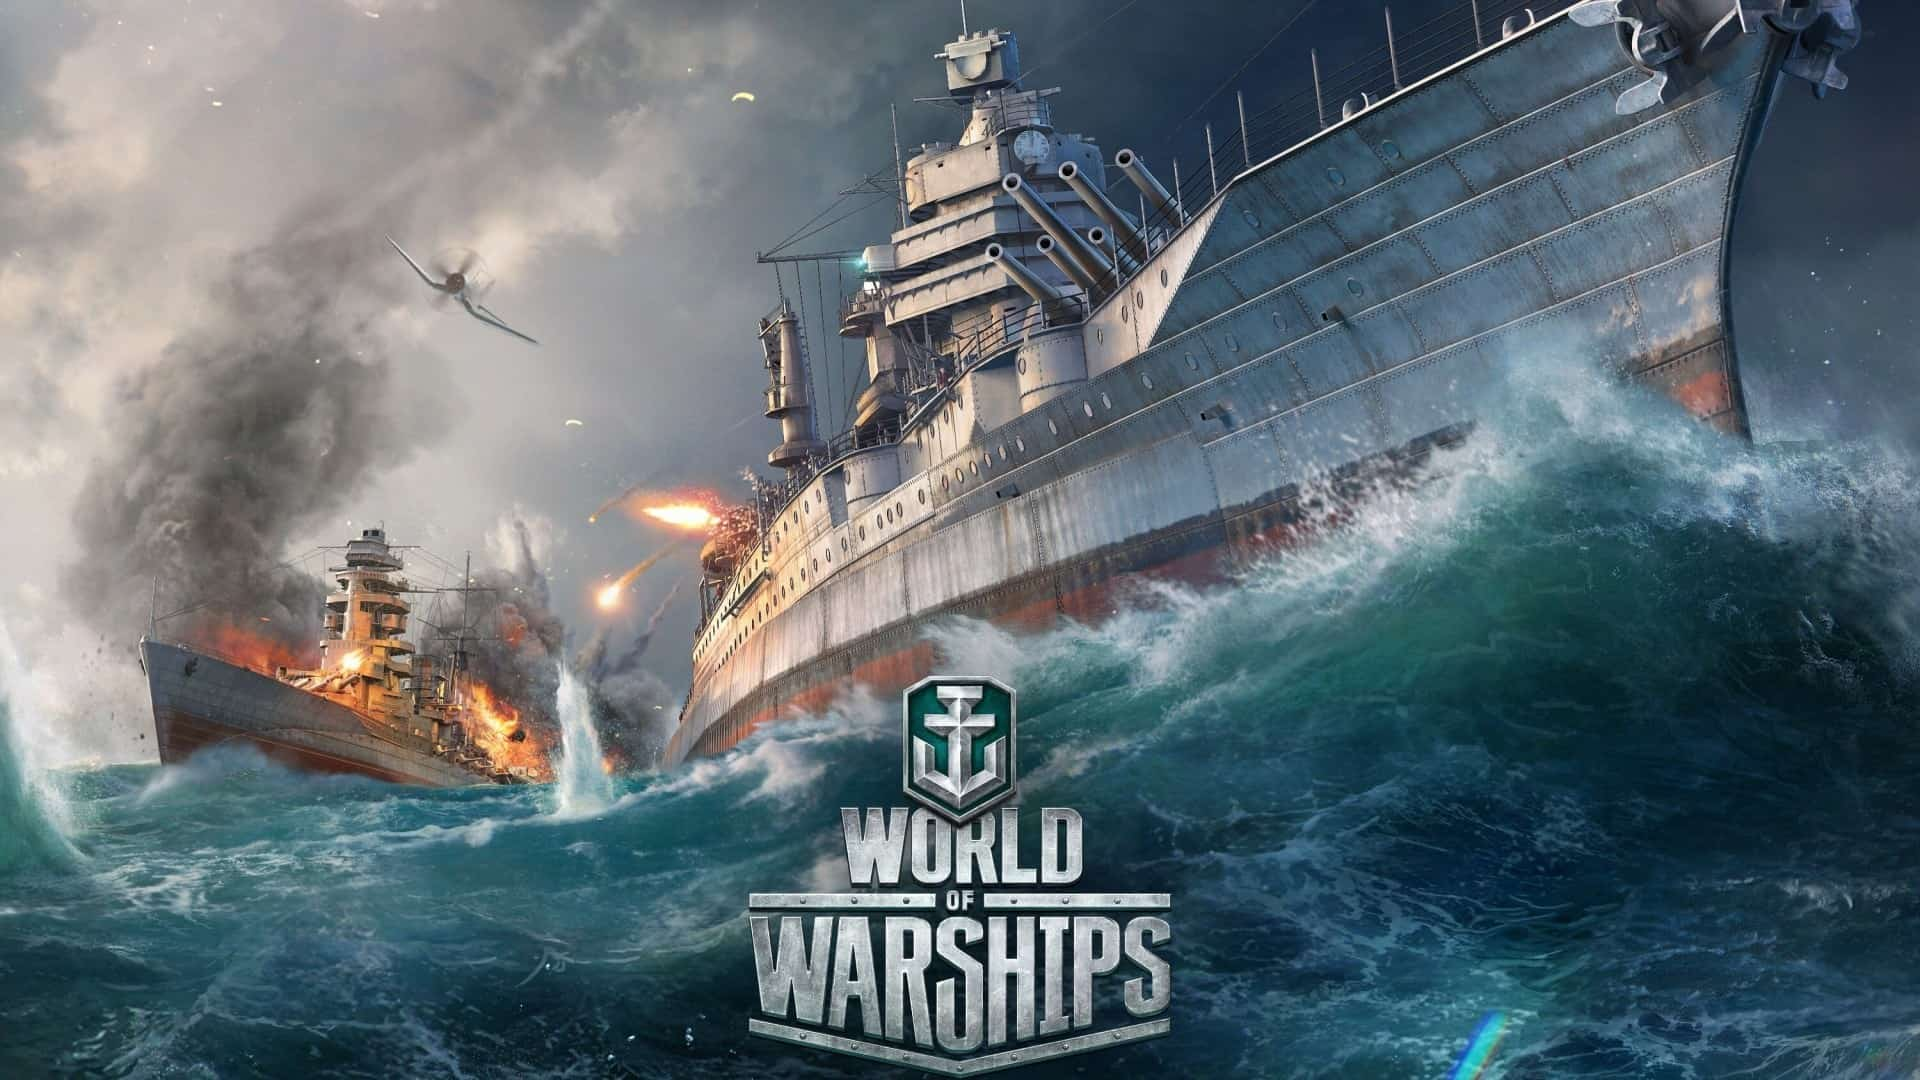 Soviet Battleships Sighted! A New Ship Line Enters World of